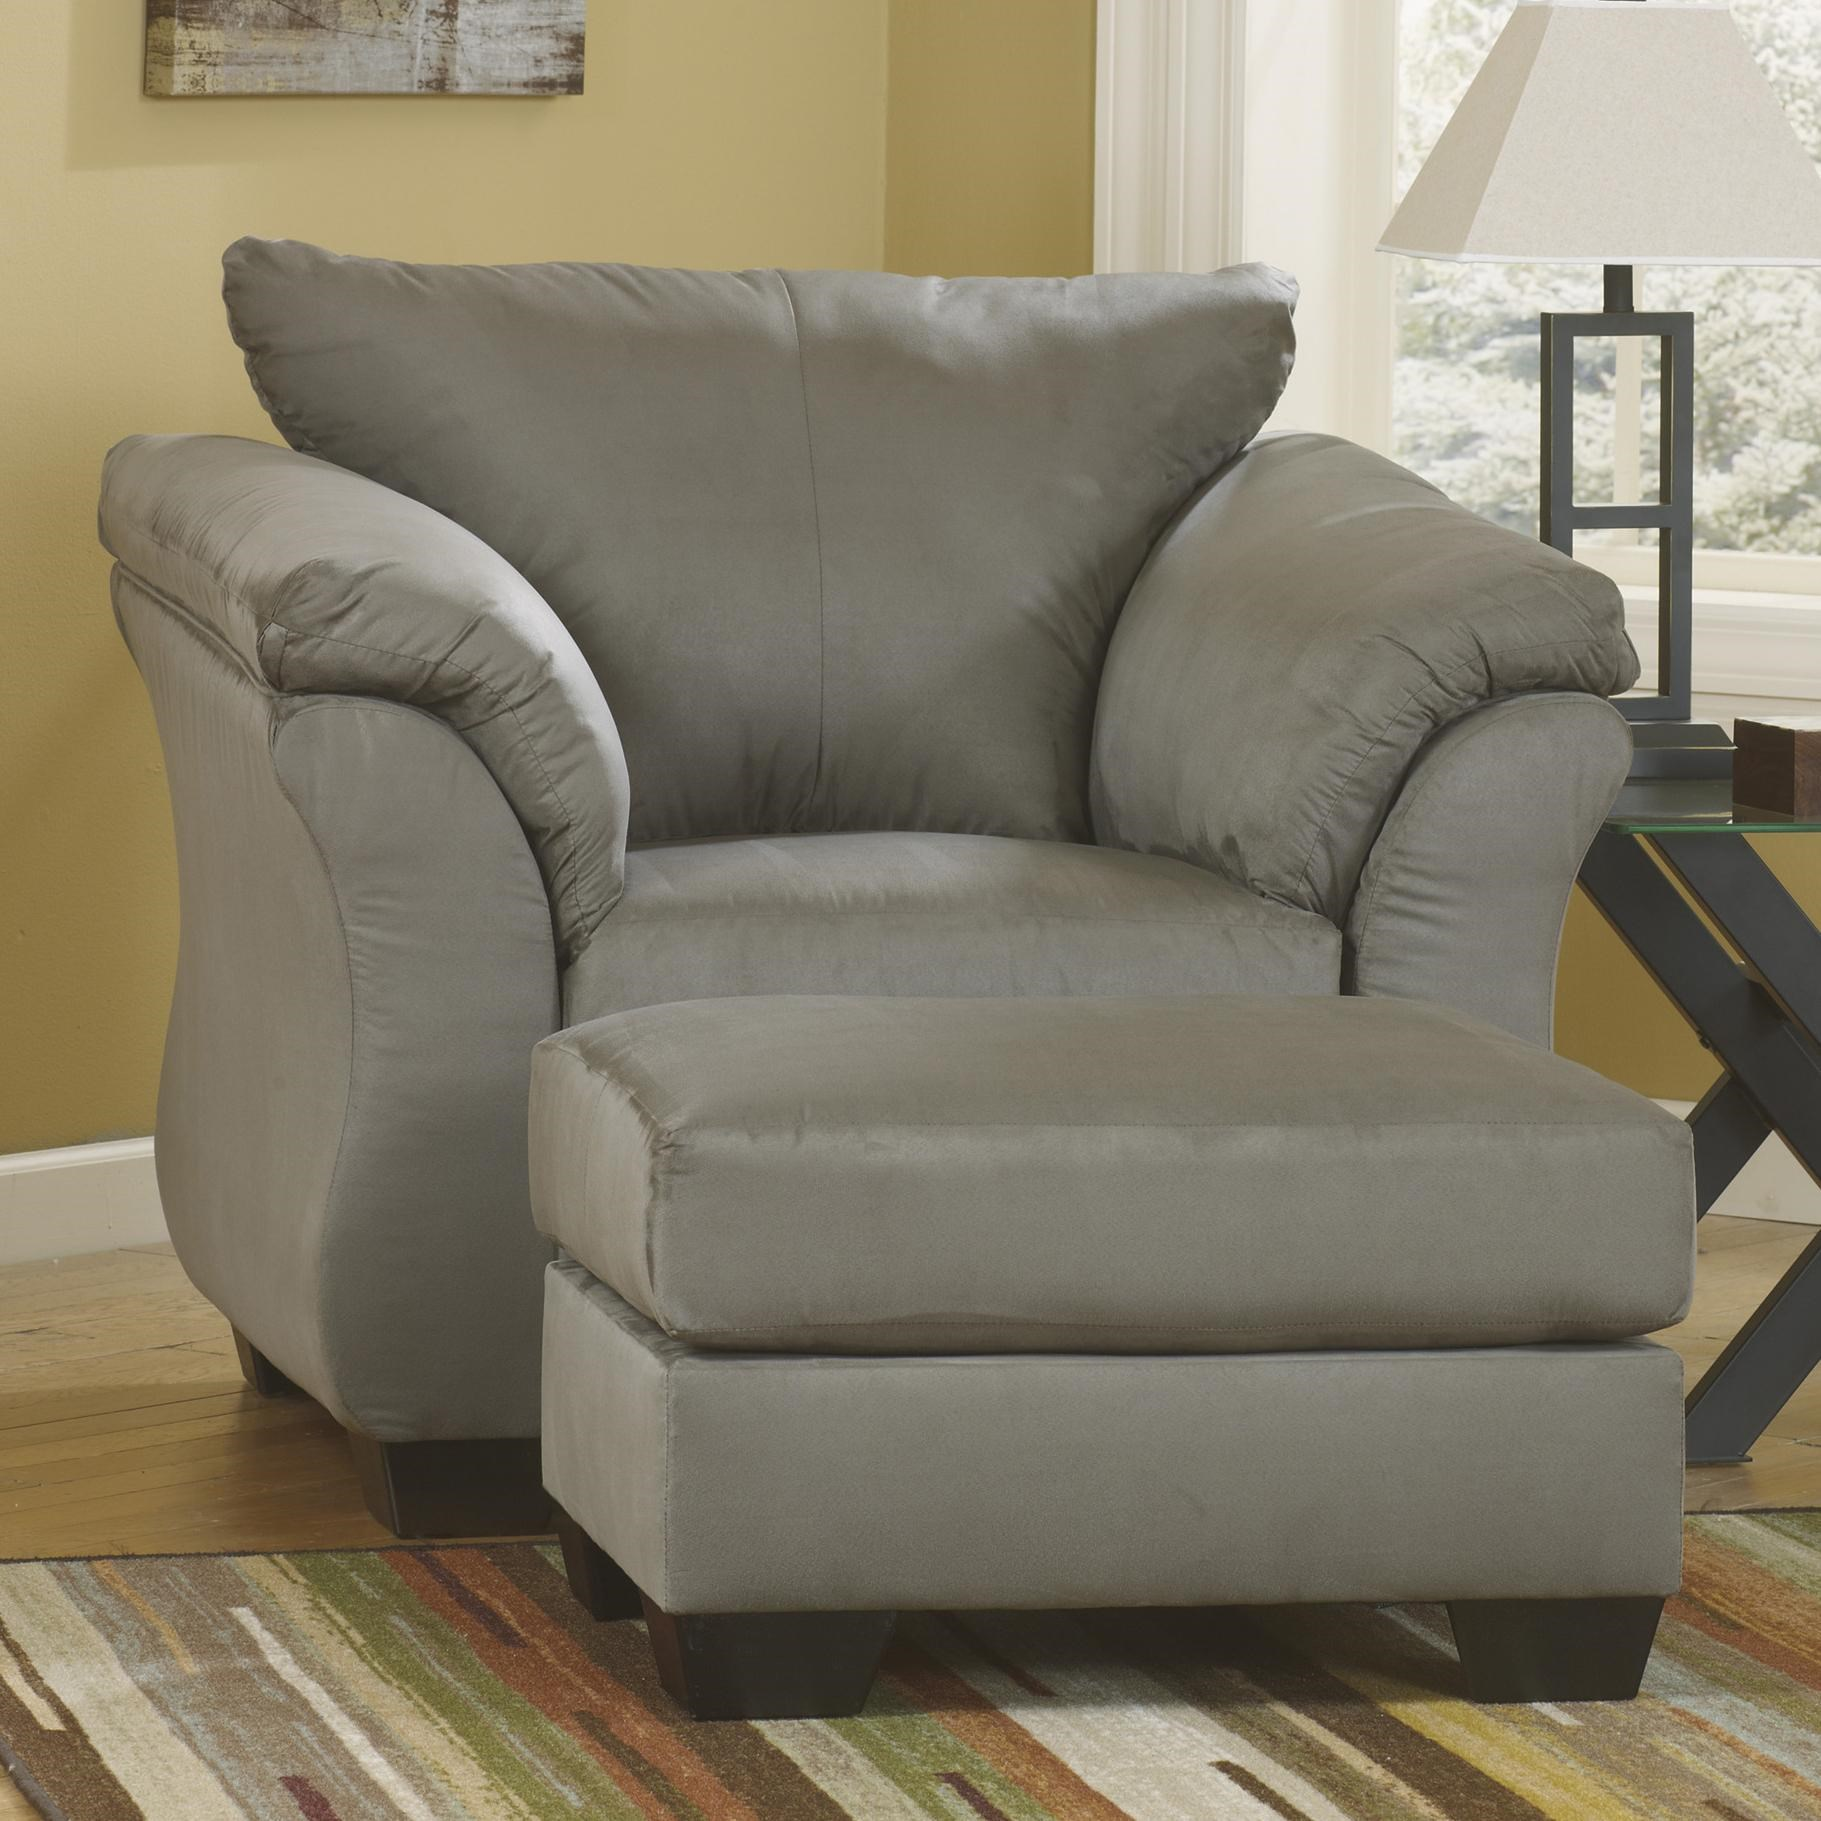 High Quality Signature Design By Ashley Darcy   Cobblestone Contemporary Upholstered  Chair And Ottoman With Tapered Legs